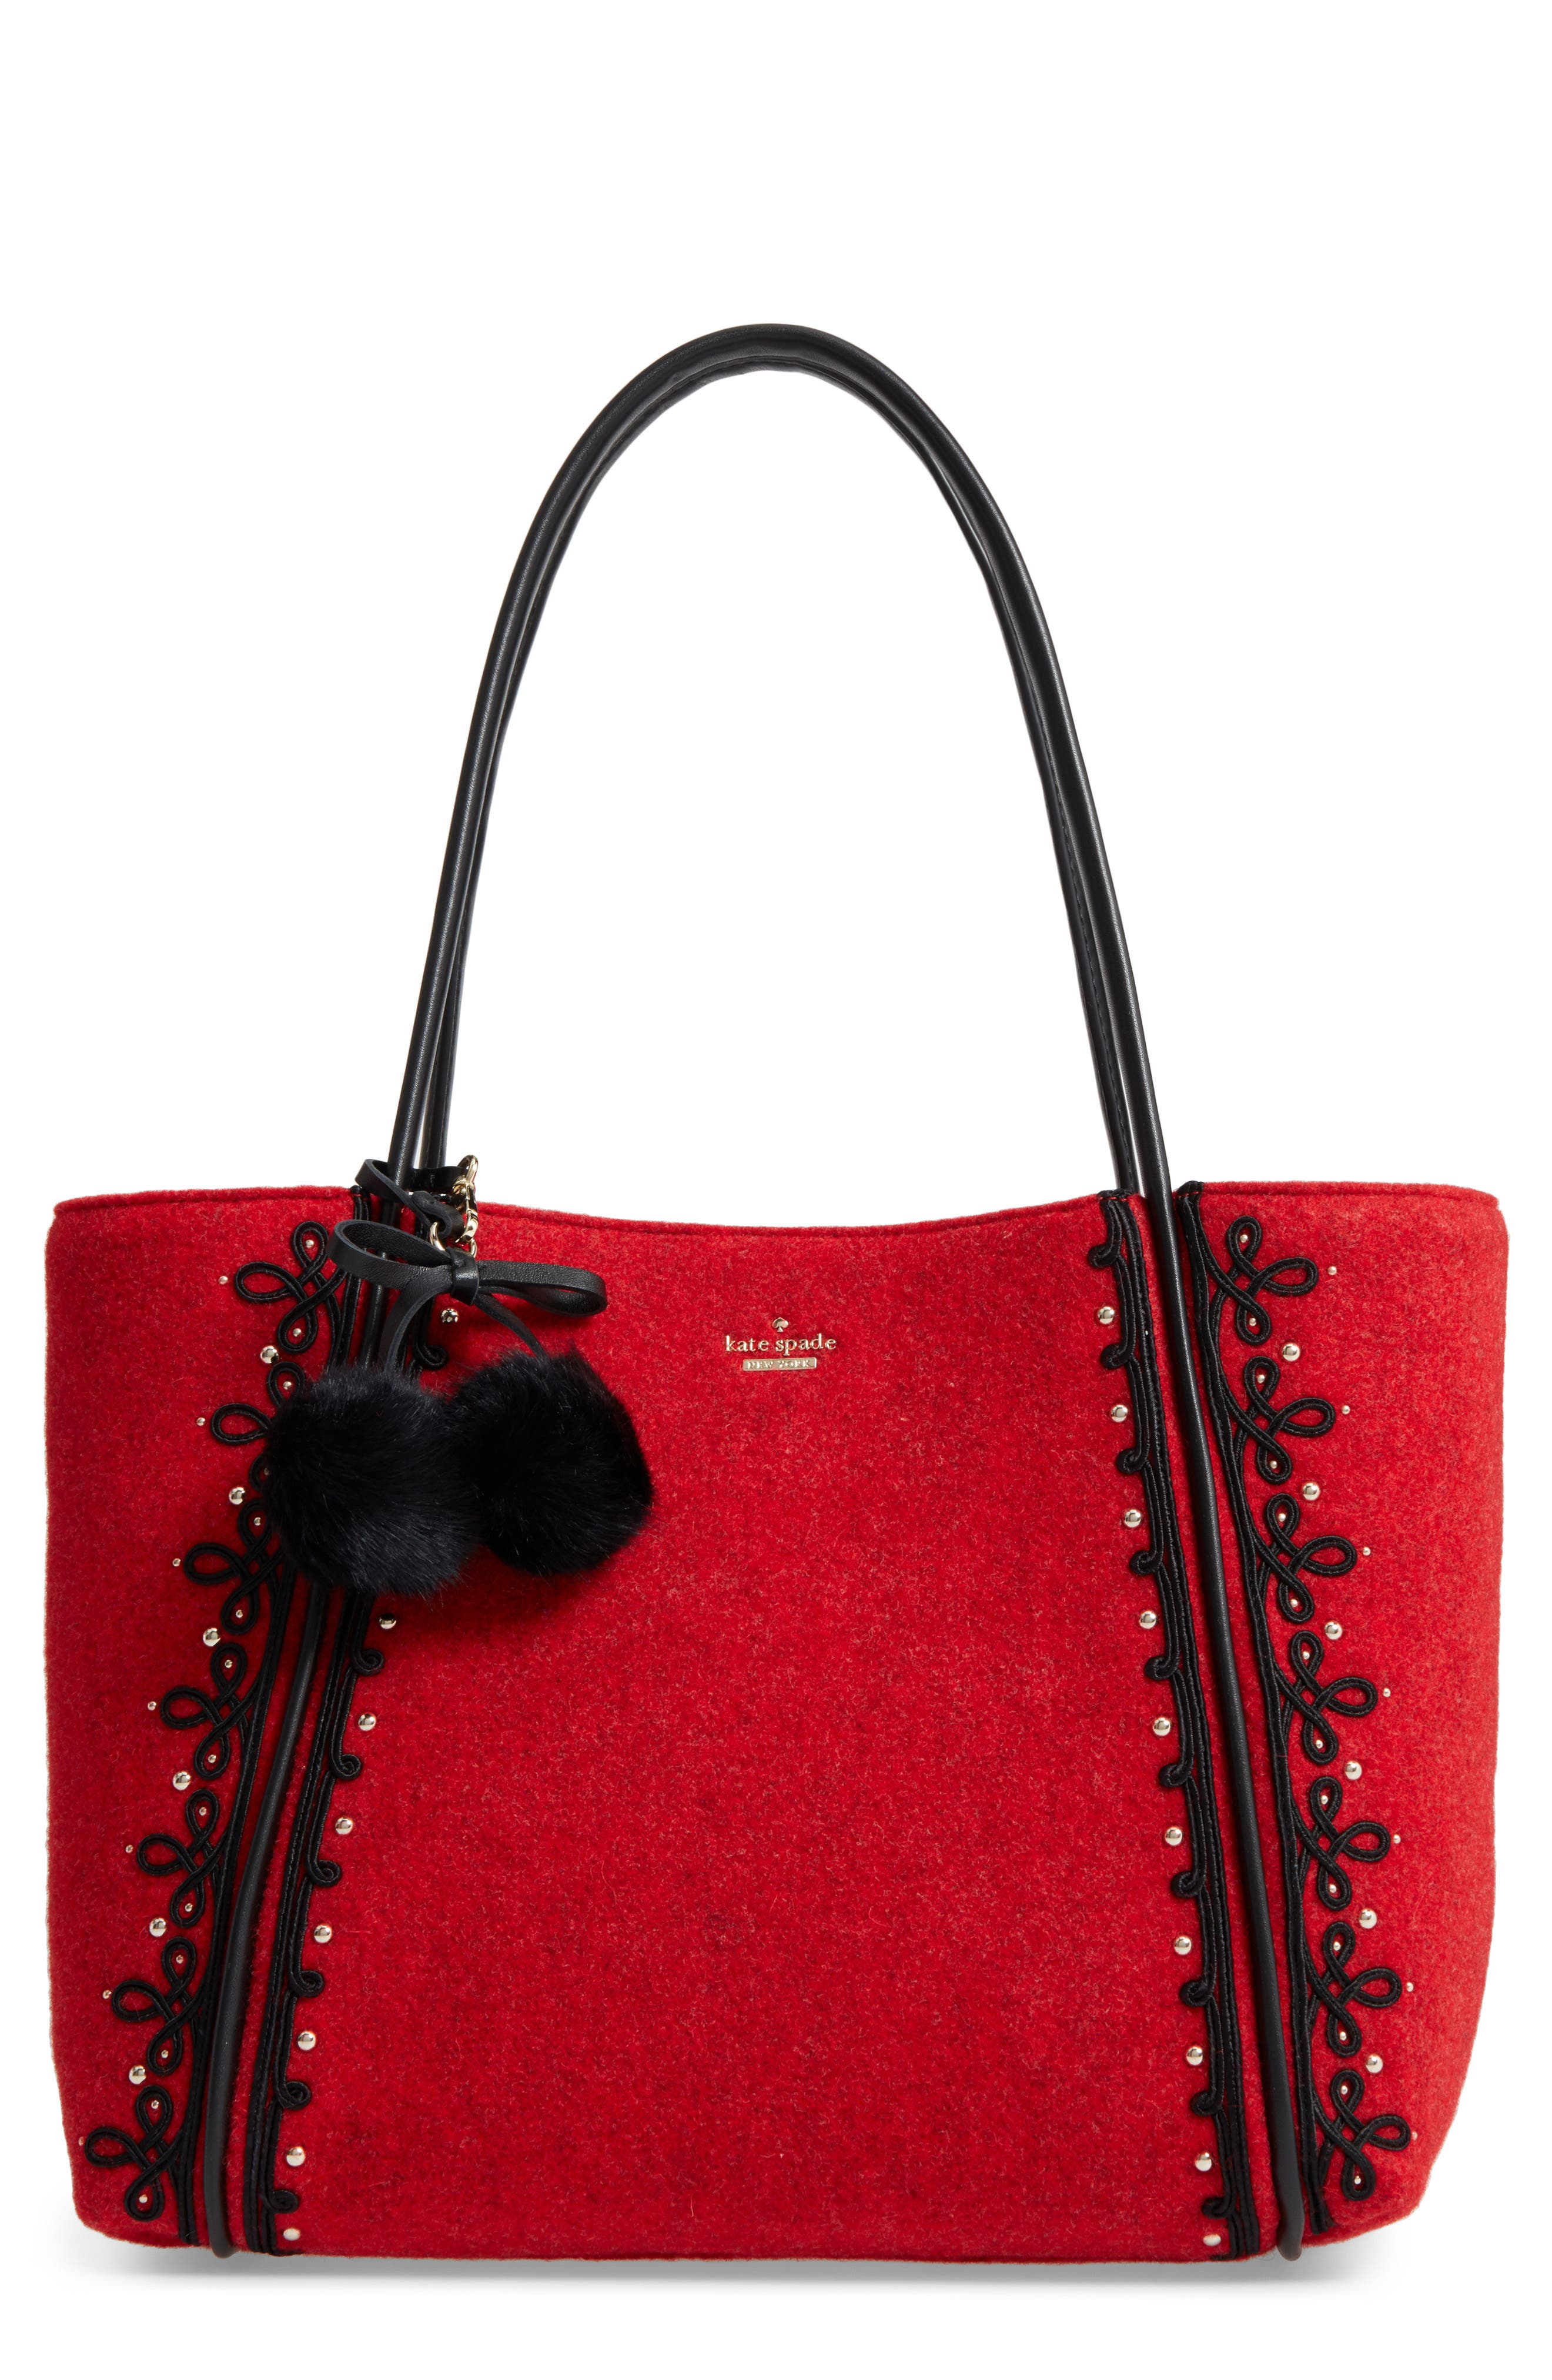 byrne street - ronan wool tote,                             Main thumbnail 1, color,                             631